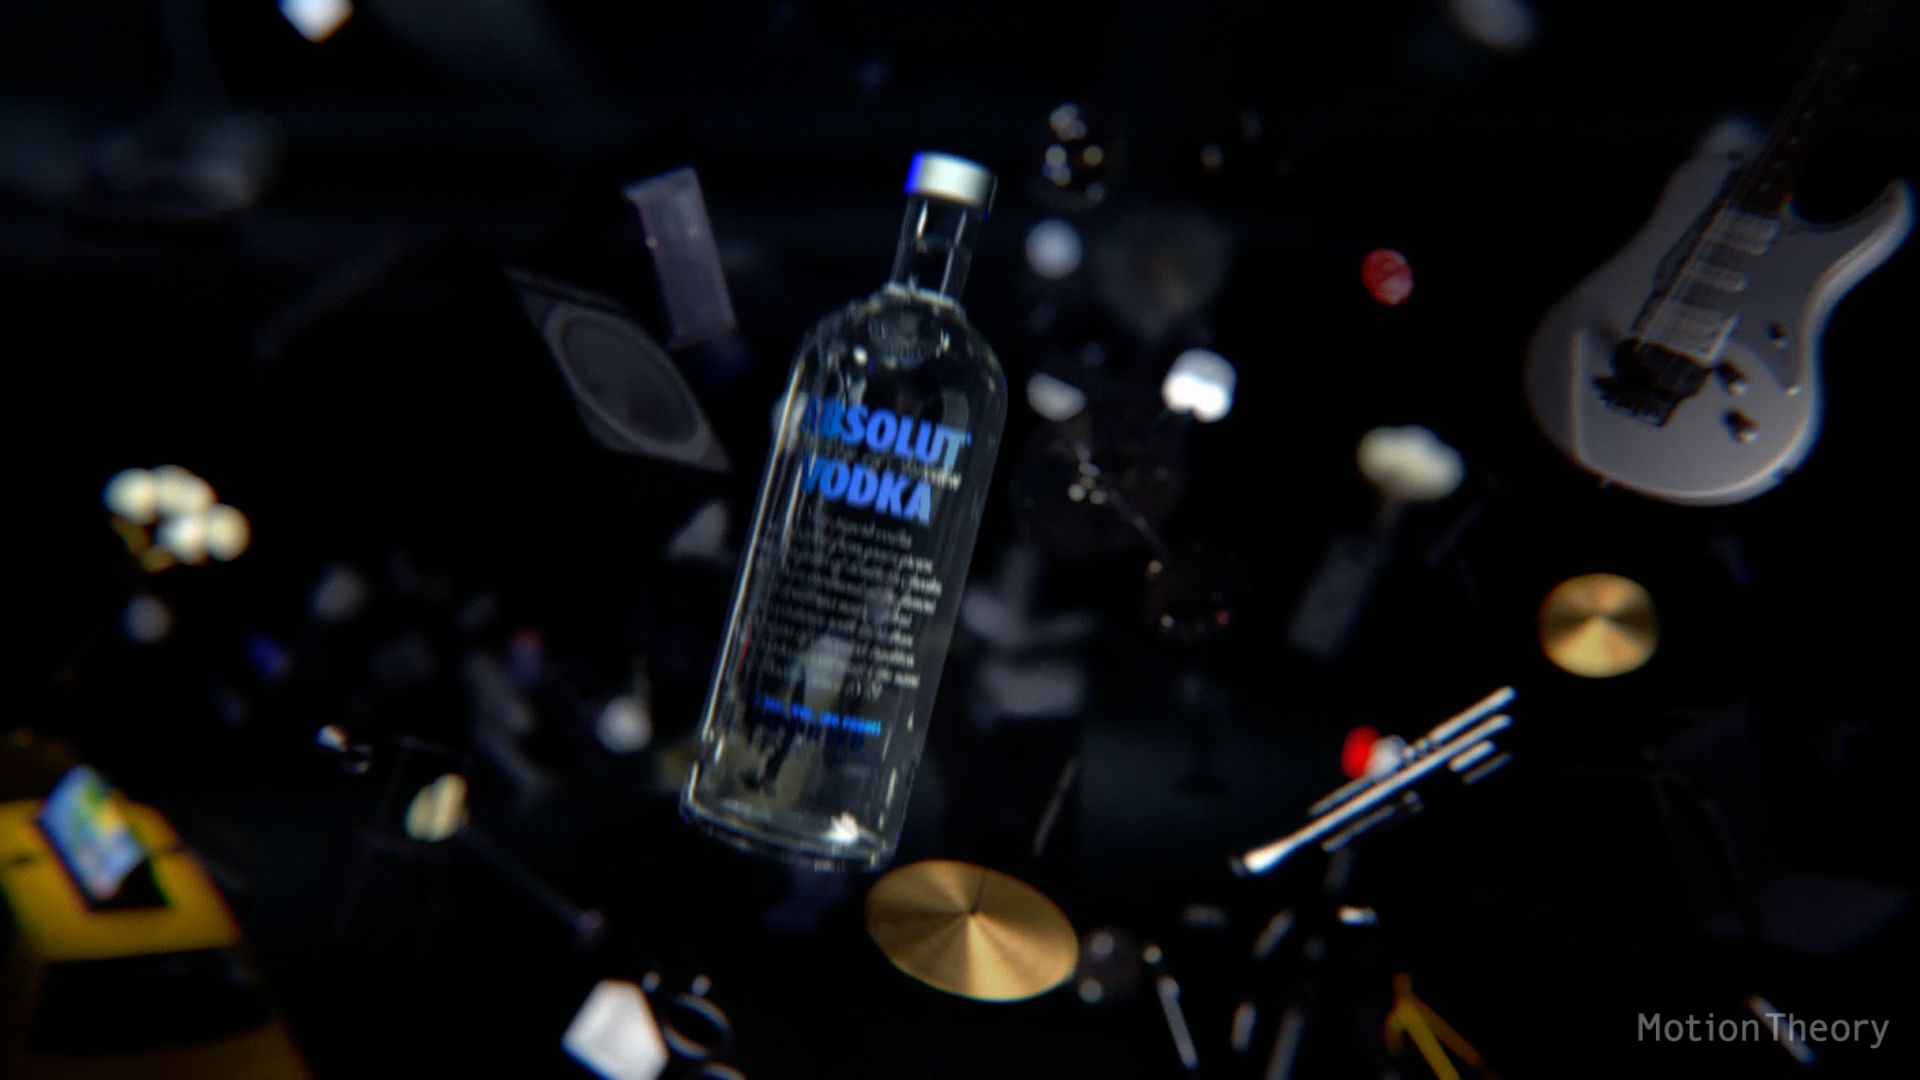 ABSOLUT_00002.png